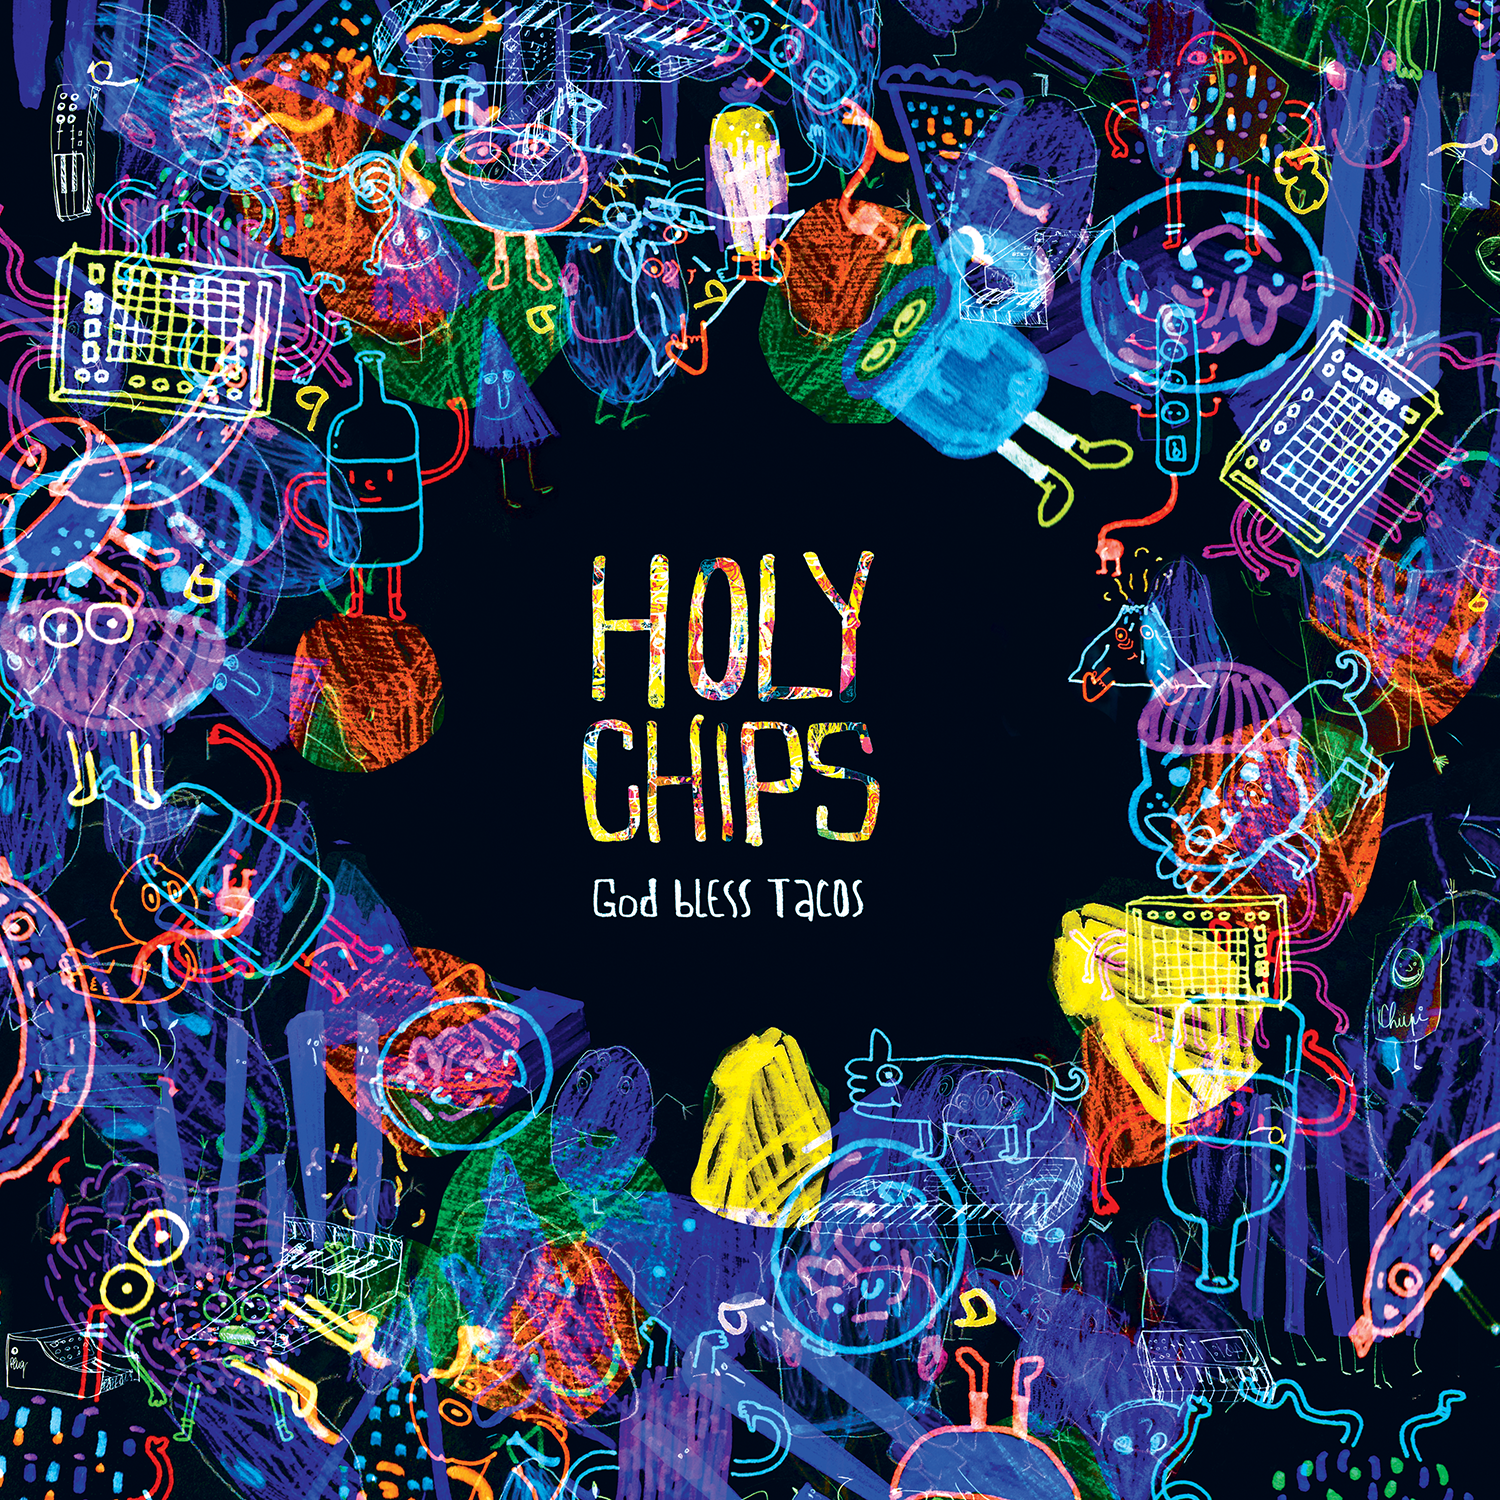 HOLY CHIPS (TSC014)